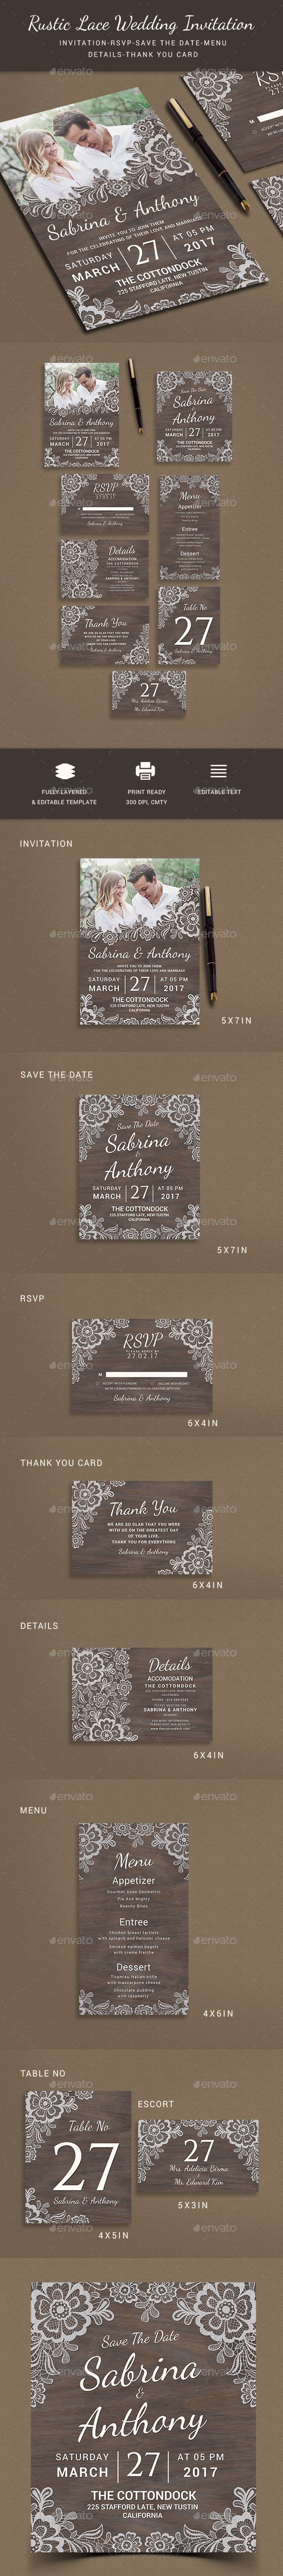 Wedding Invitation - Weddings Cards & Invites Download here: https://graphicriver.net/item/wedding-invitation/19495333?ref=classicdesignp